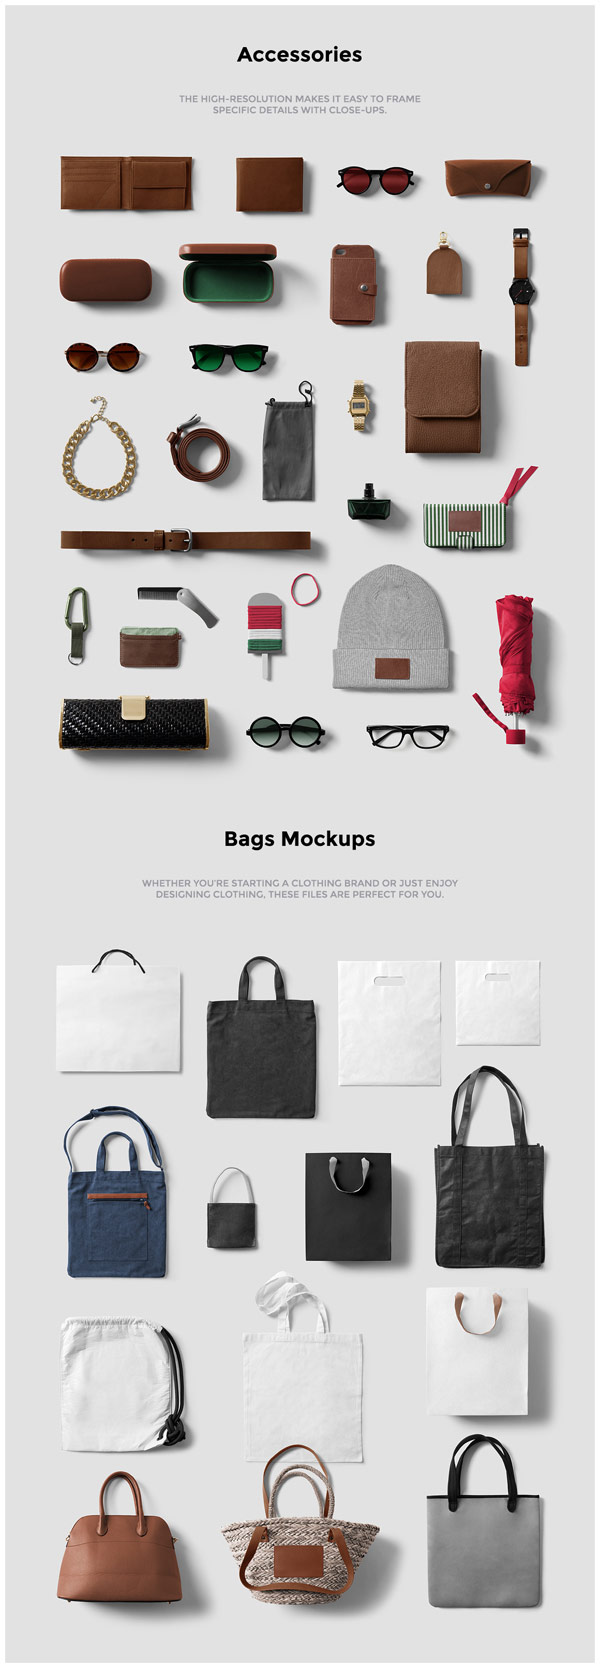 Lots of accessories and bags.